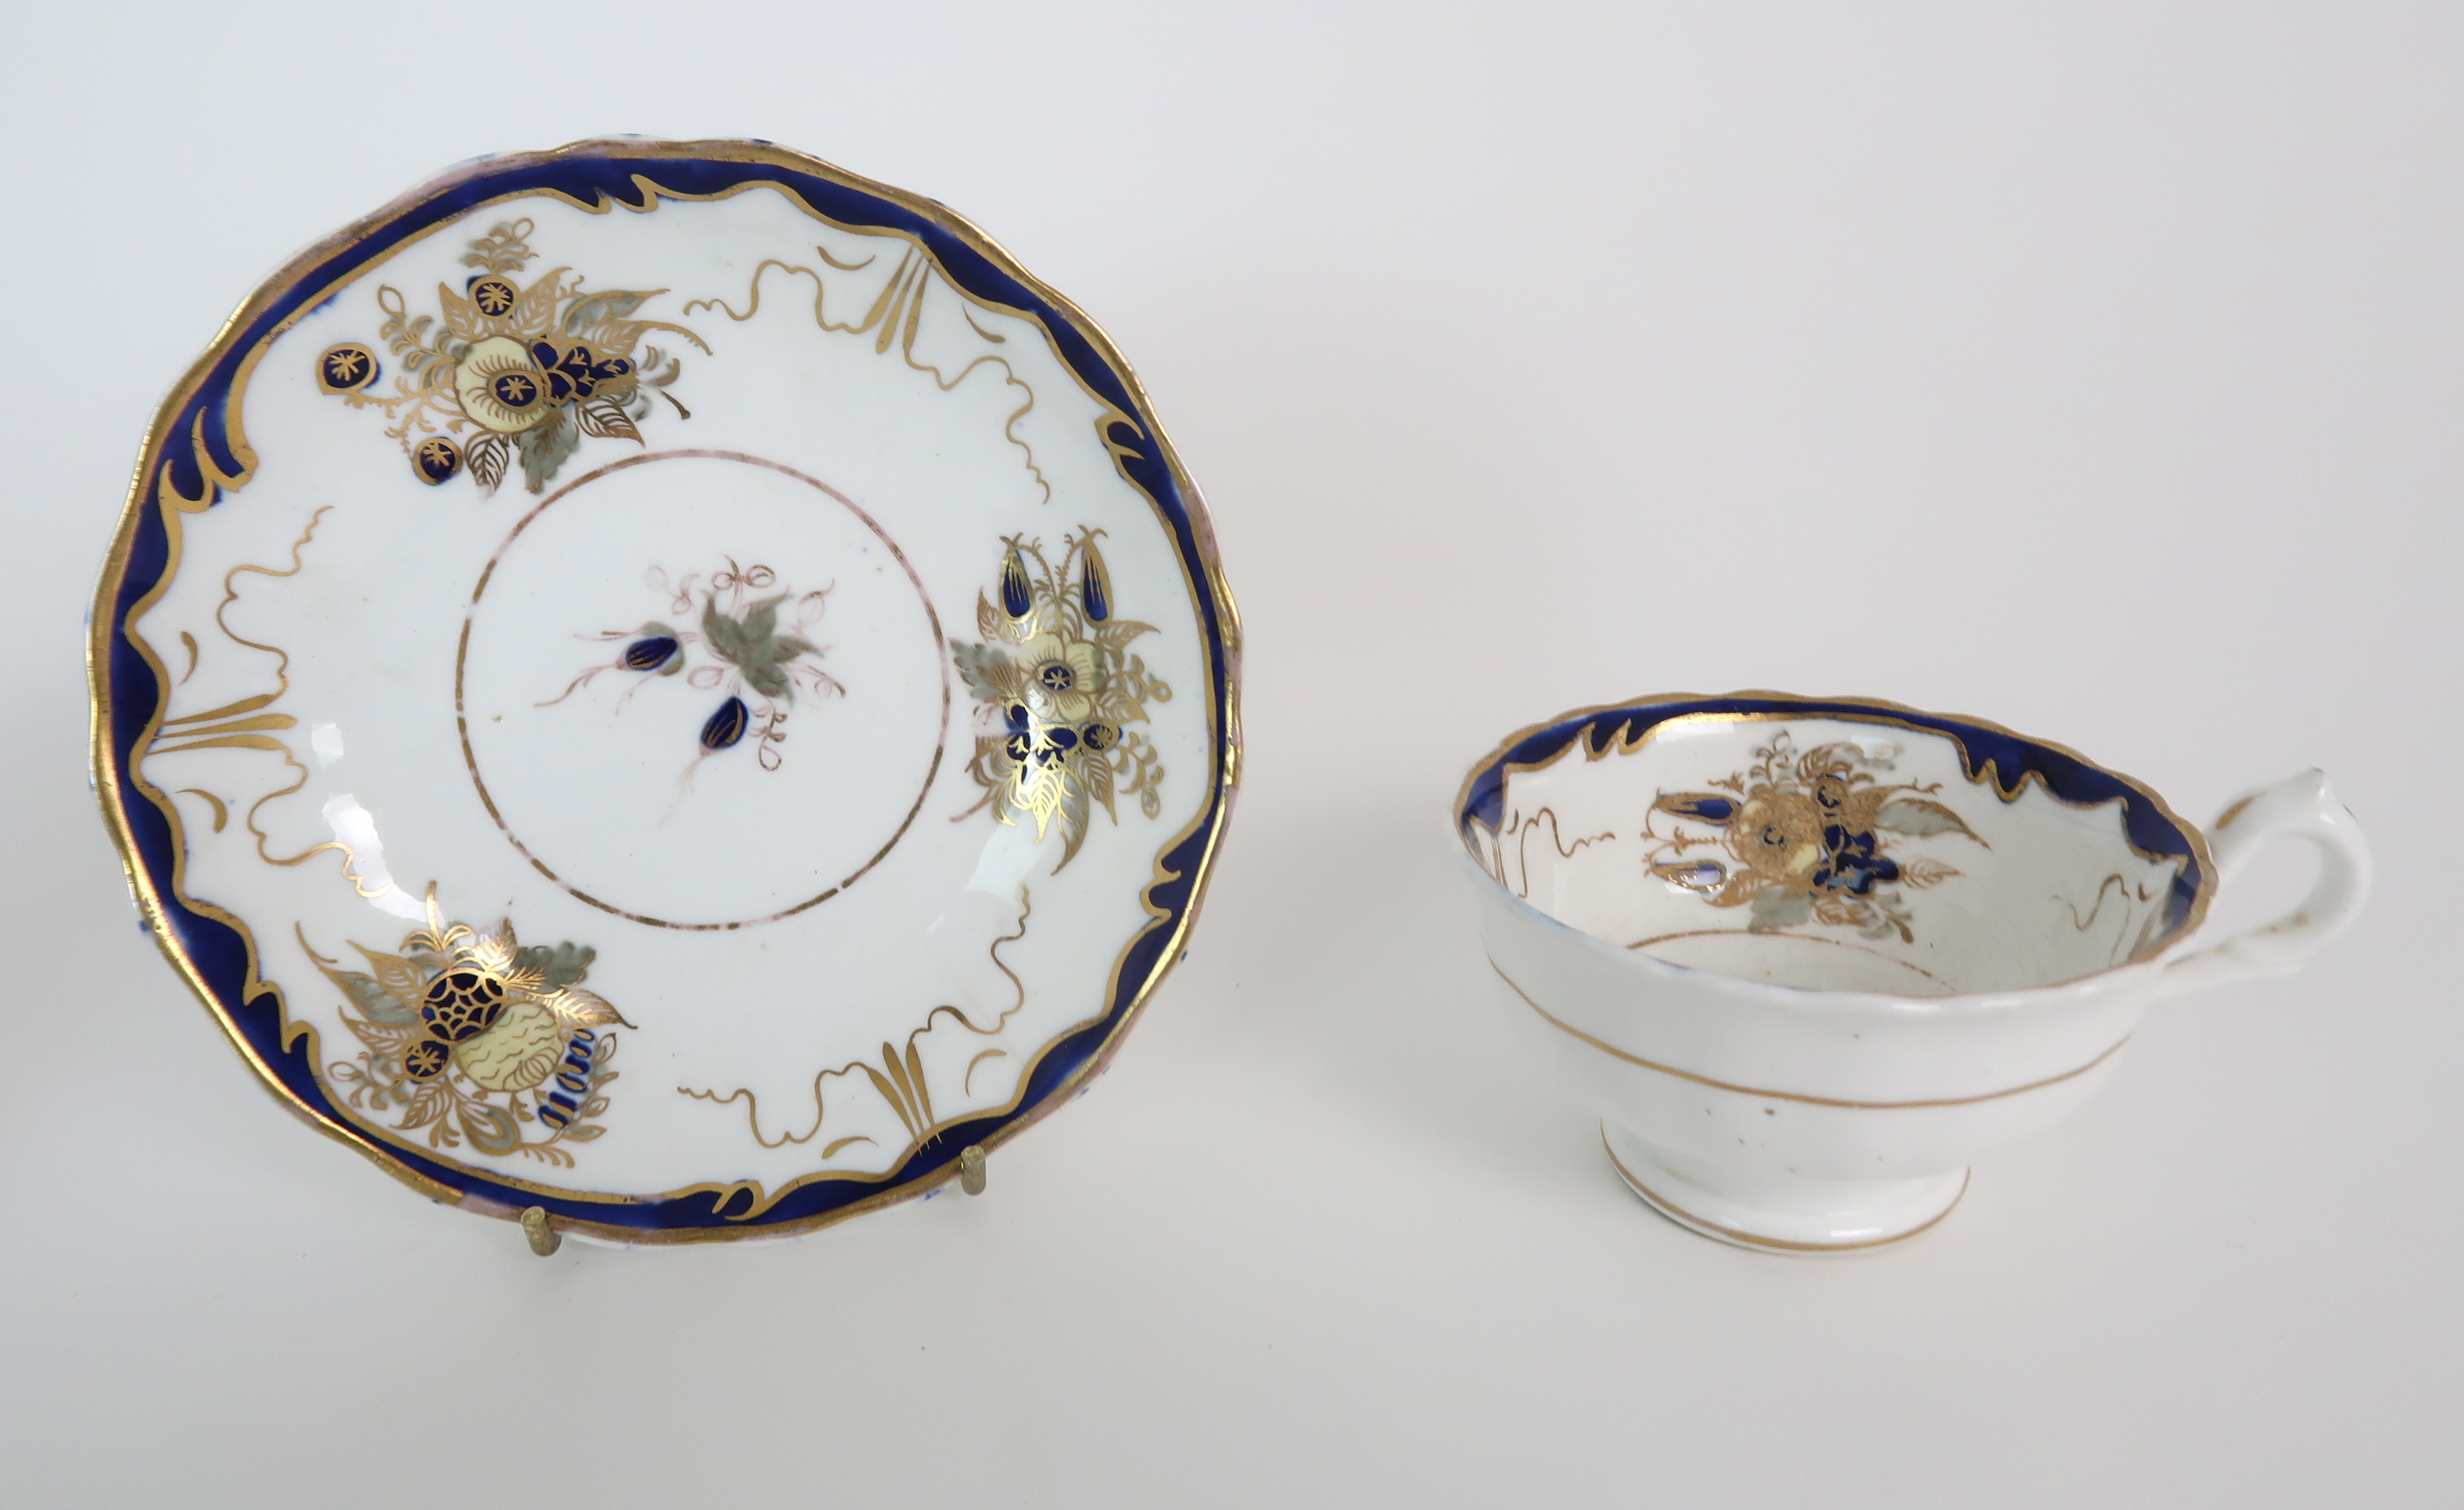 A COLLECTION OF 19TH CENTURY ENGLISH BLUE AND GILT DECORATED TEA AND COFFEE WARES including a - Image 6 of 23